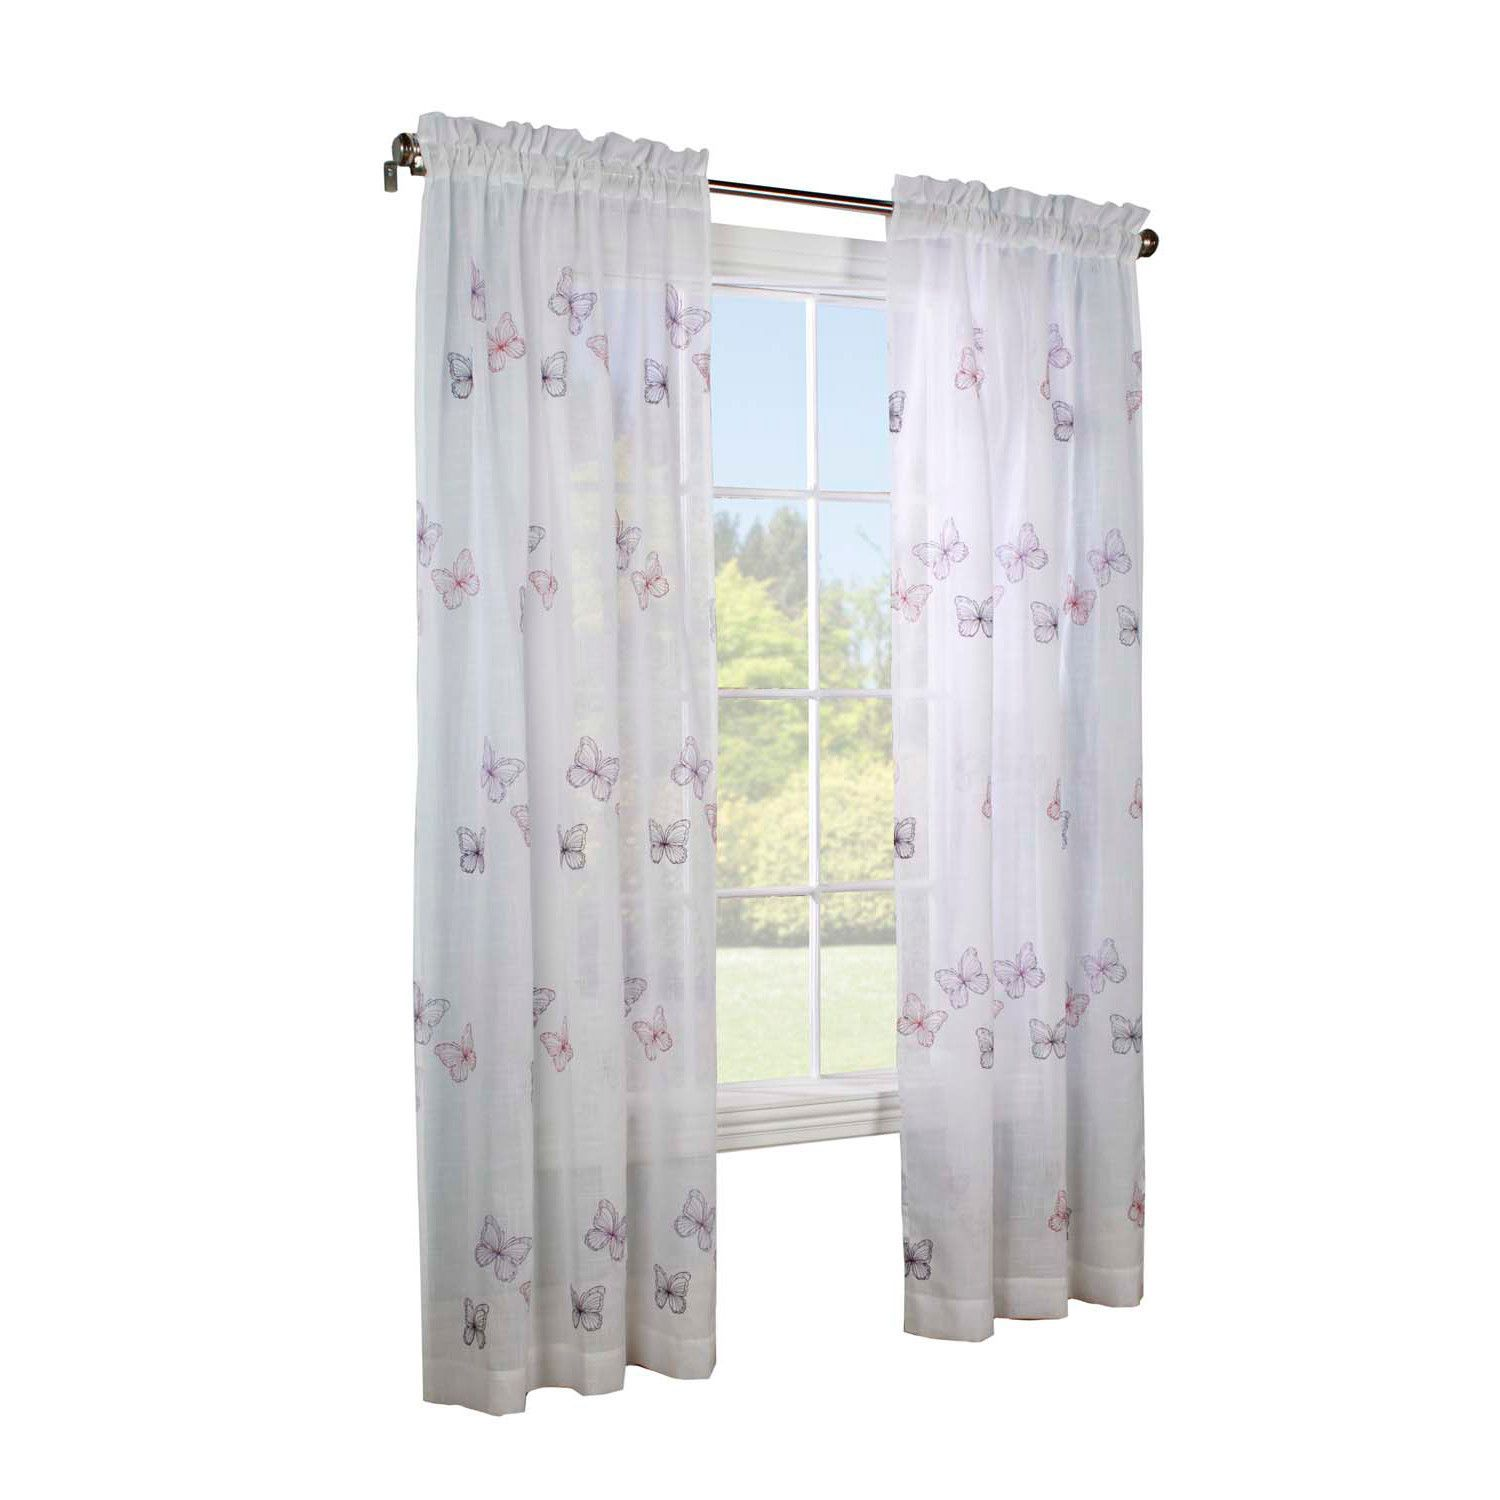 Legacy j papillon faux linen embroidered window pole top panel